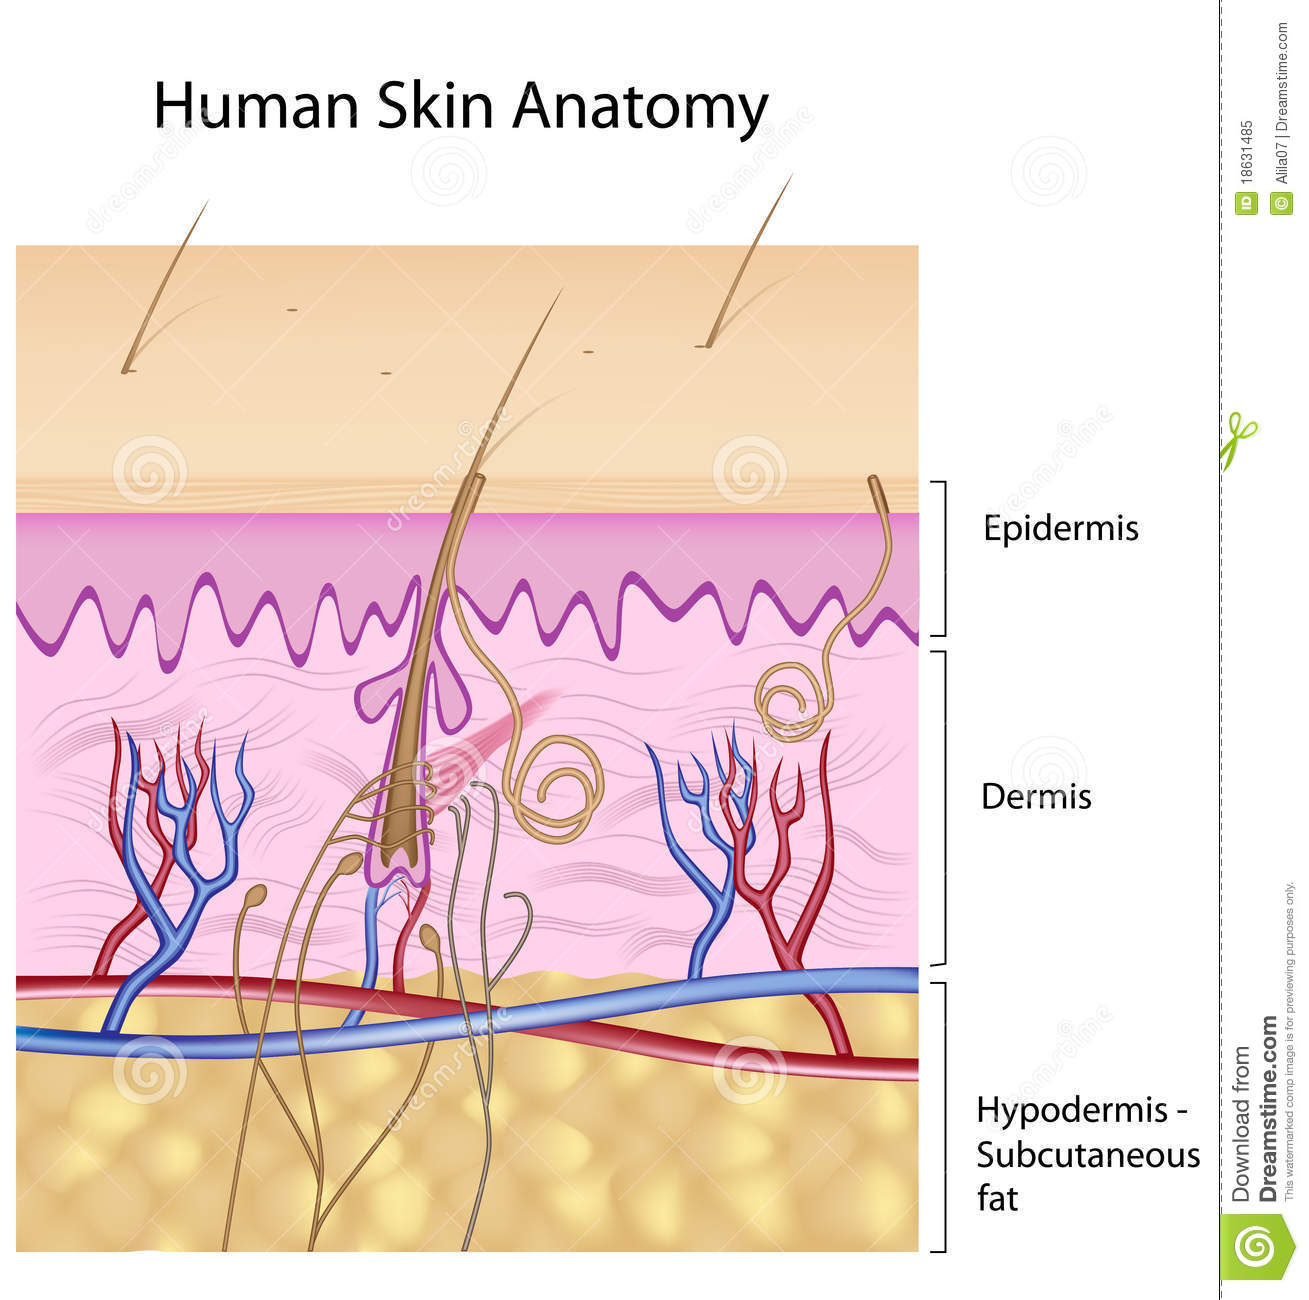 Human Skin Anatomy Non Labeled Version Royalty Free Stock